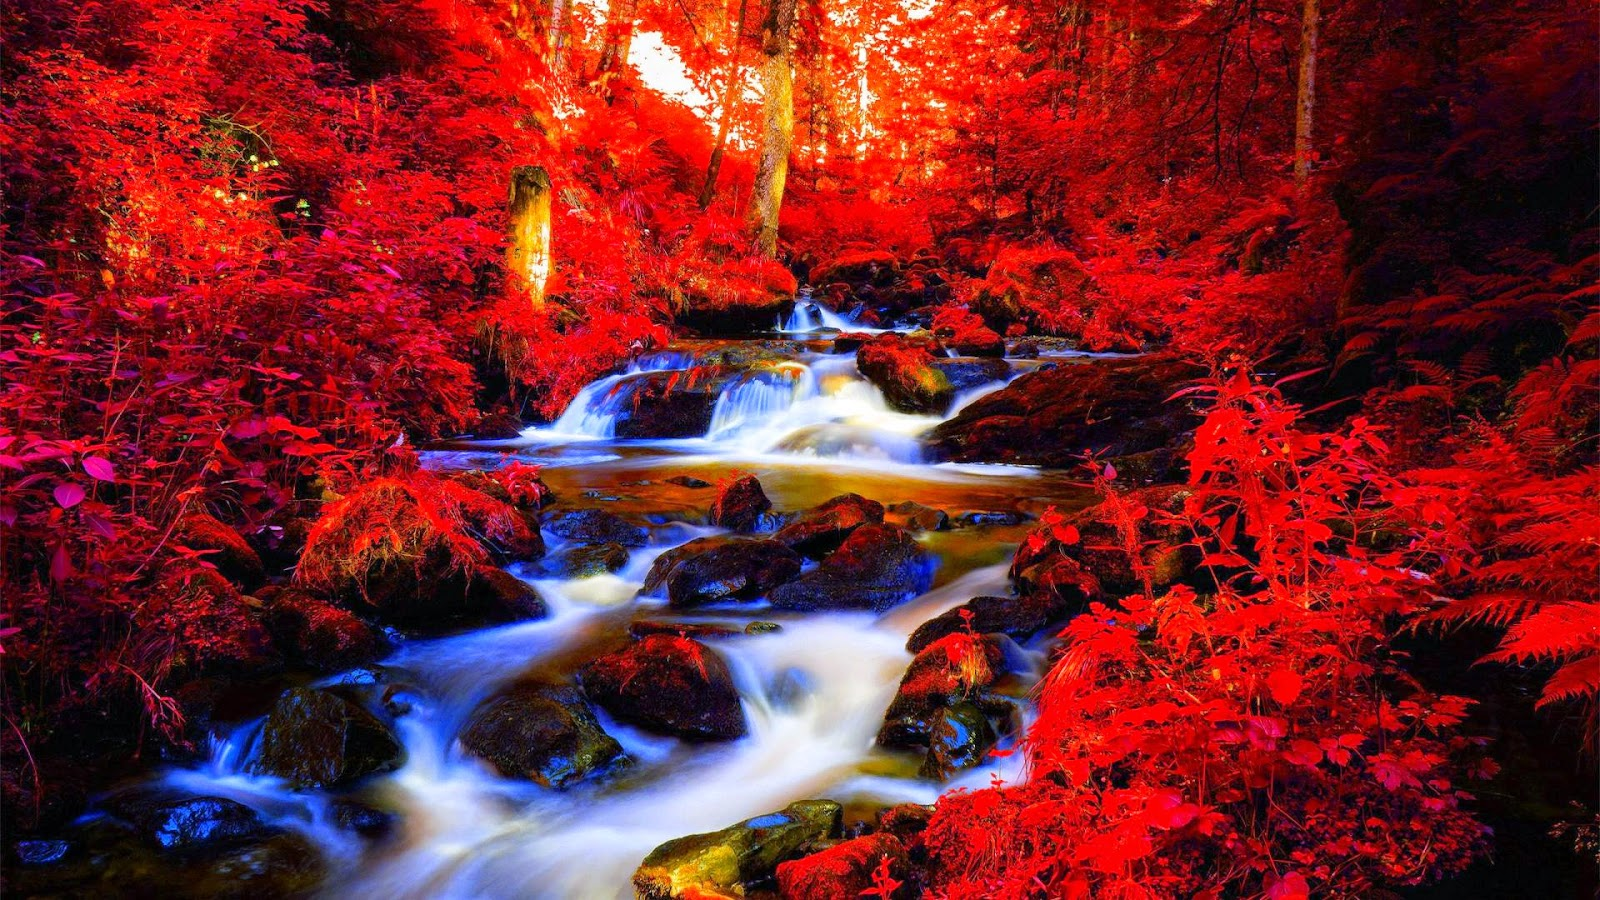 Source Amazing Red Forest HD Wallpapers HYIP Bitz Investment